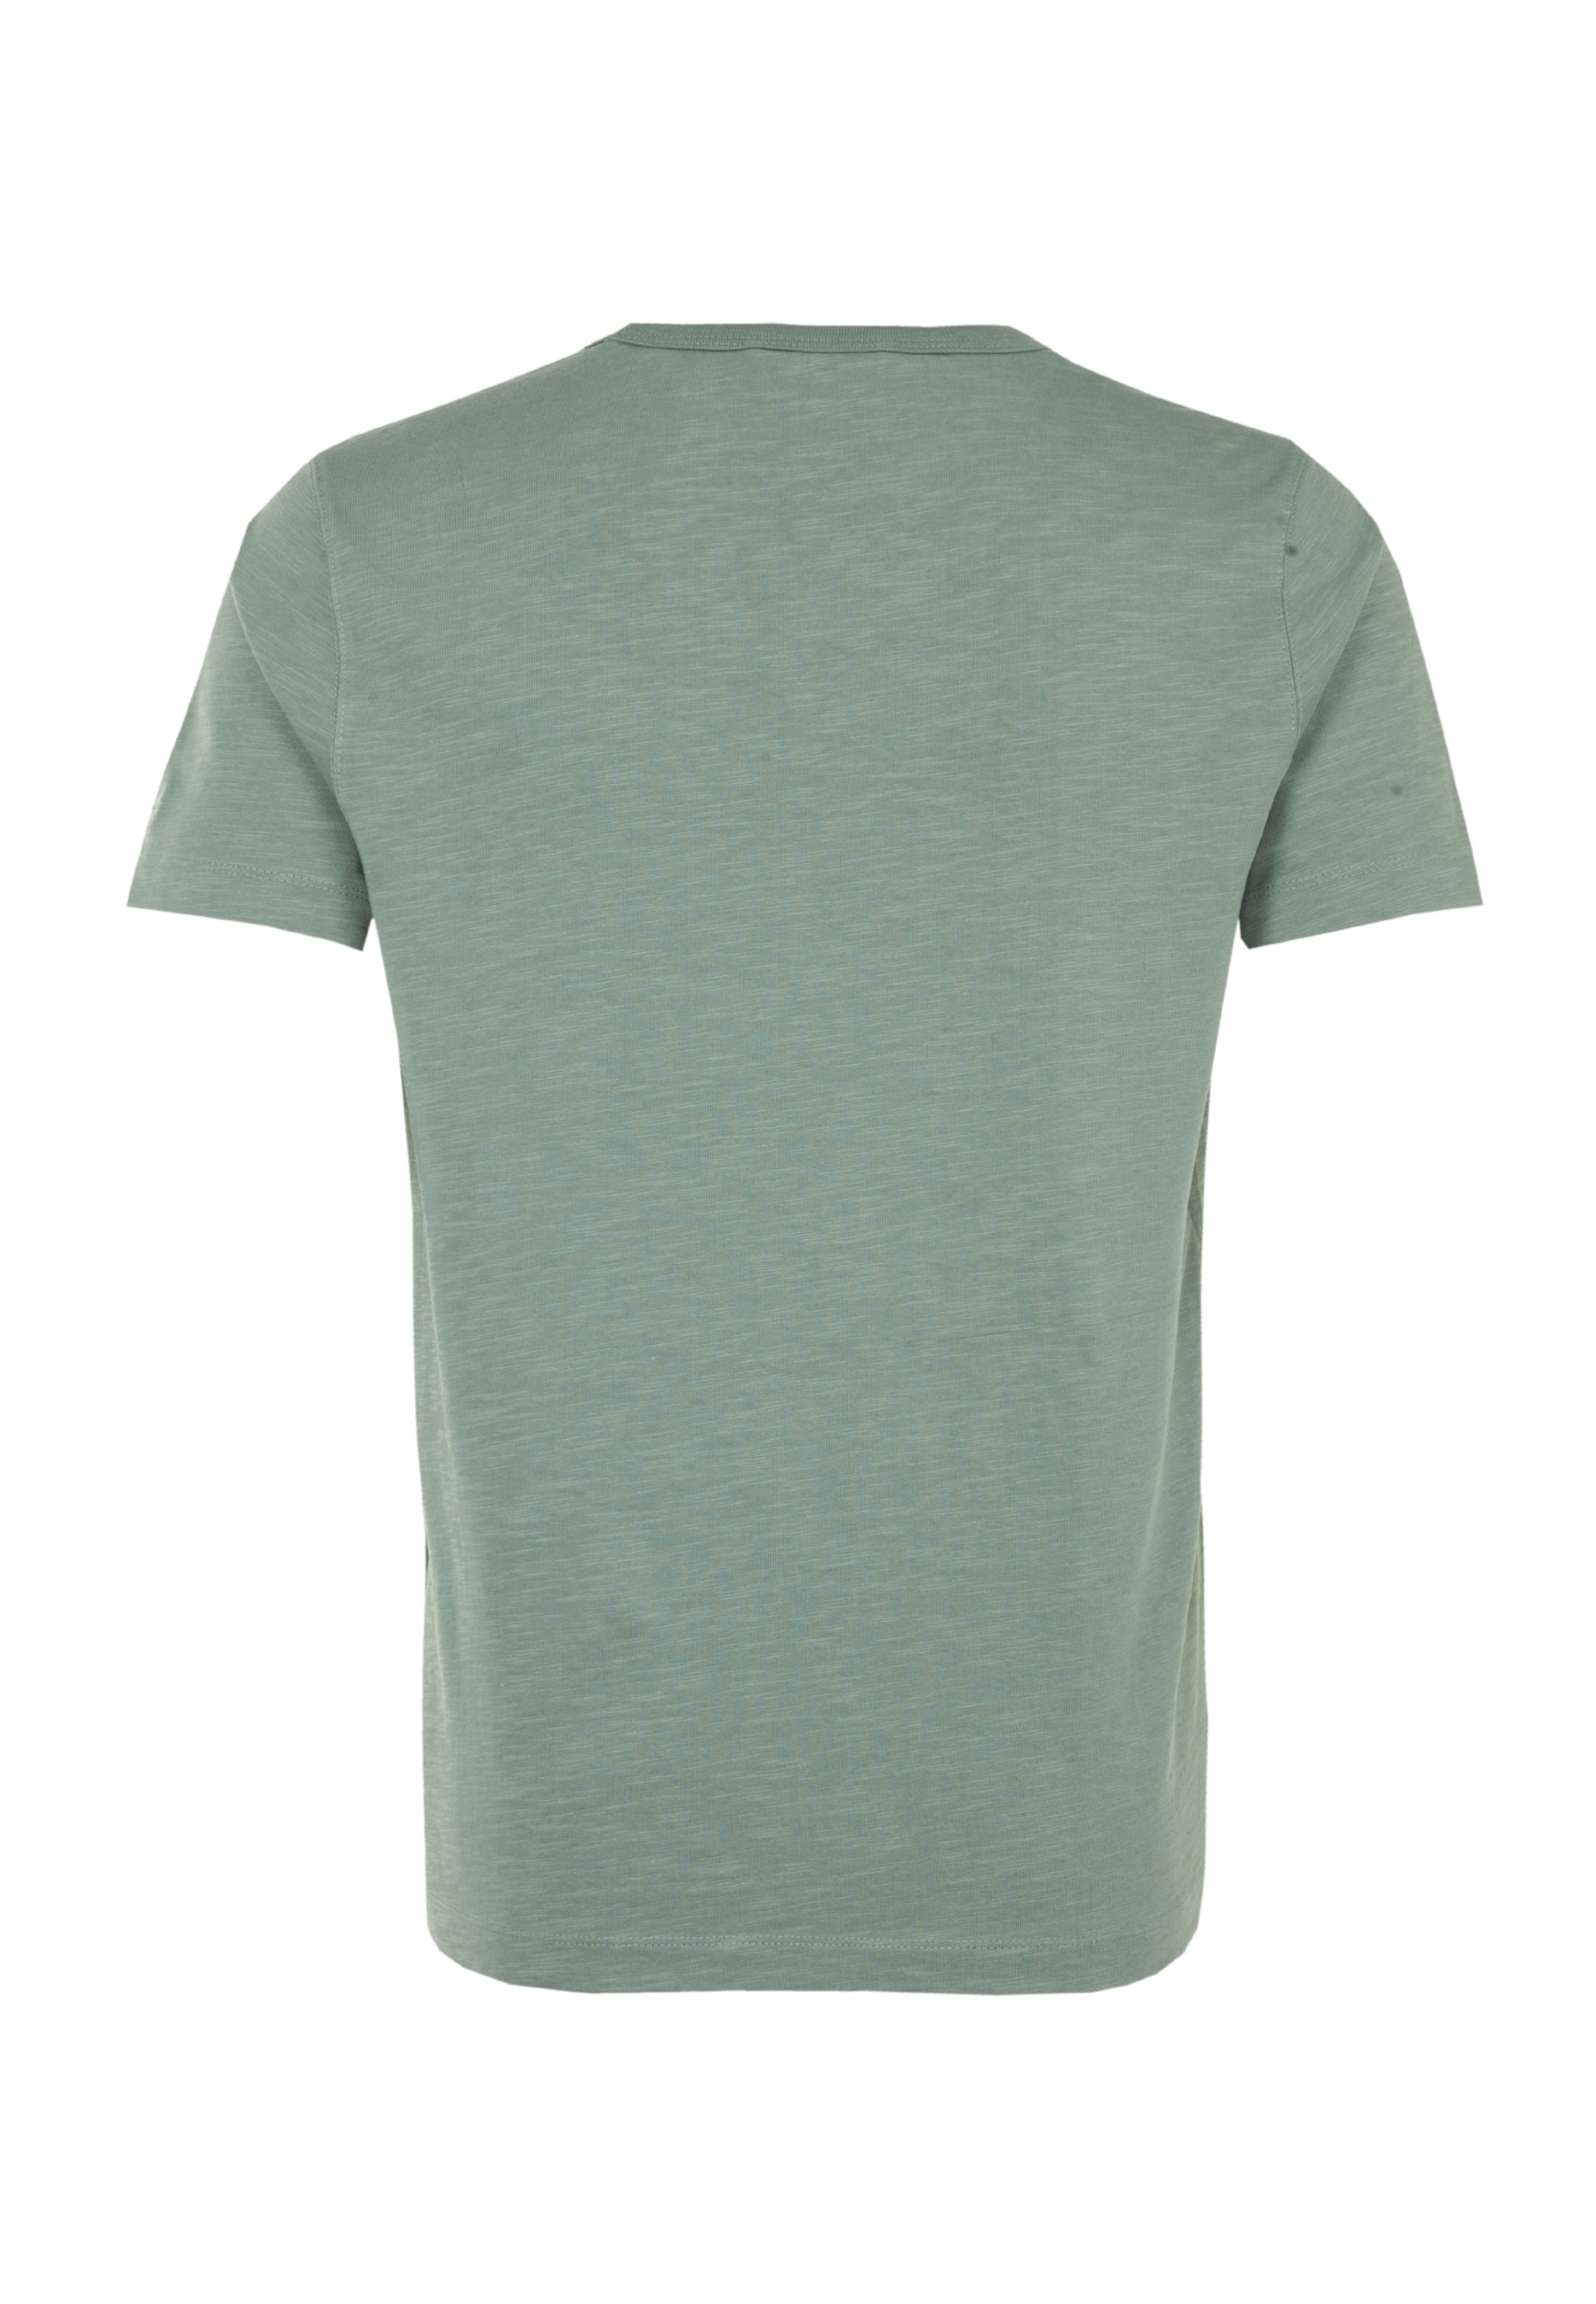 shirt Camel Petrol T In Active HYbeE9ID2W